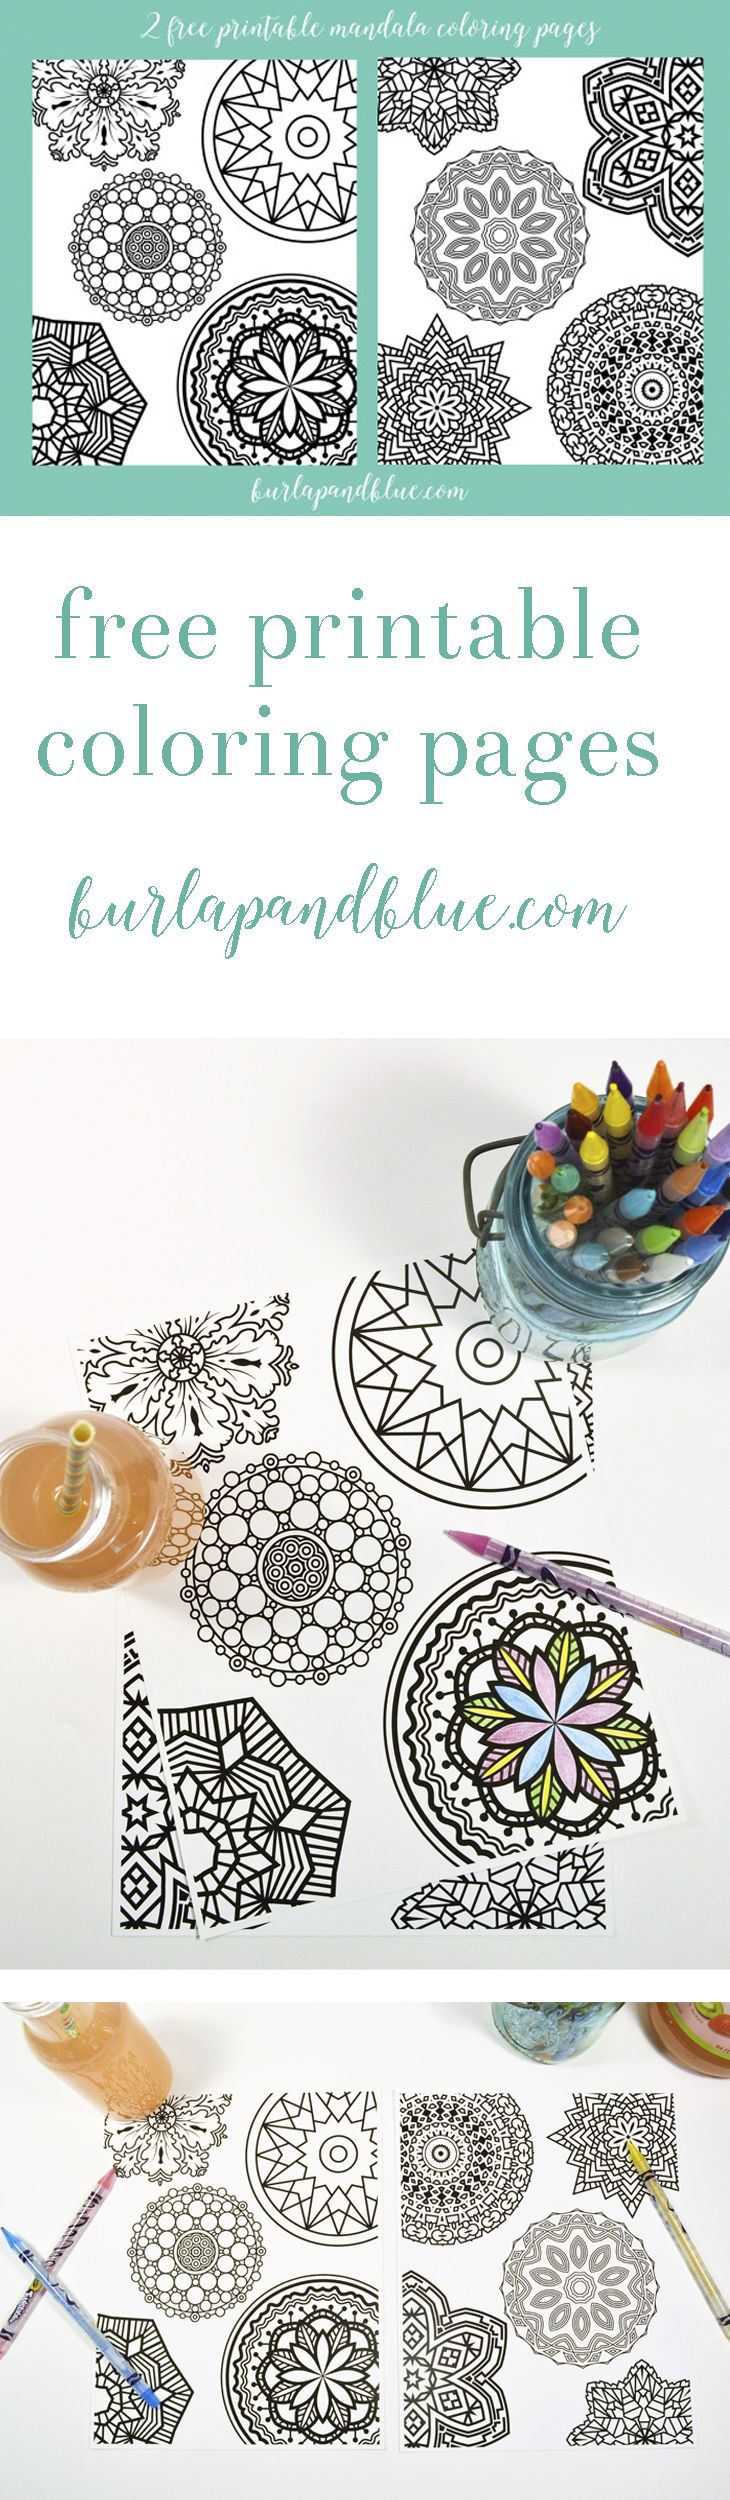 free printable mandala coloring pages! the perfect way to relax with some free adult coloring pages!